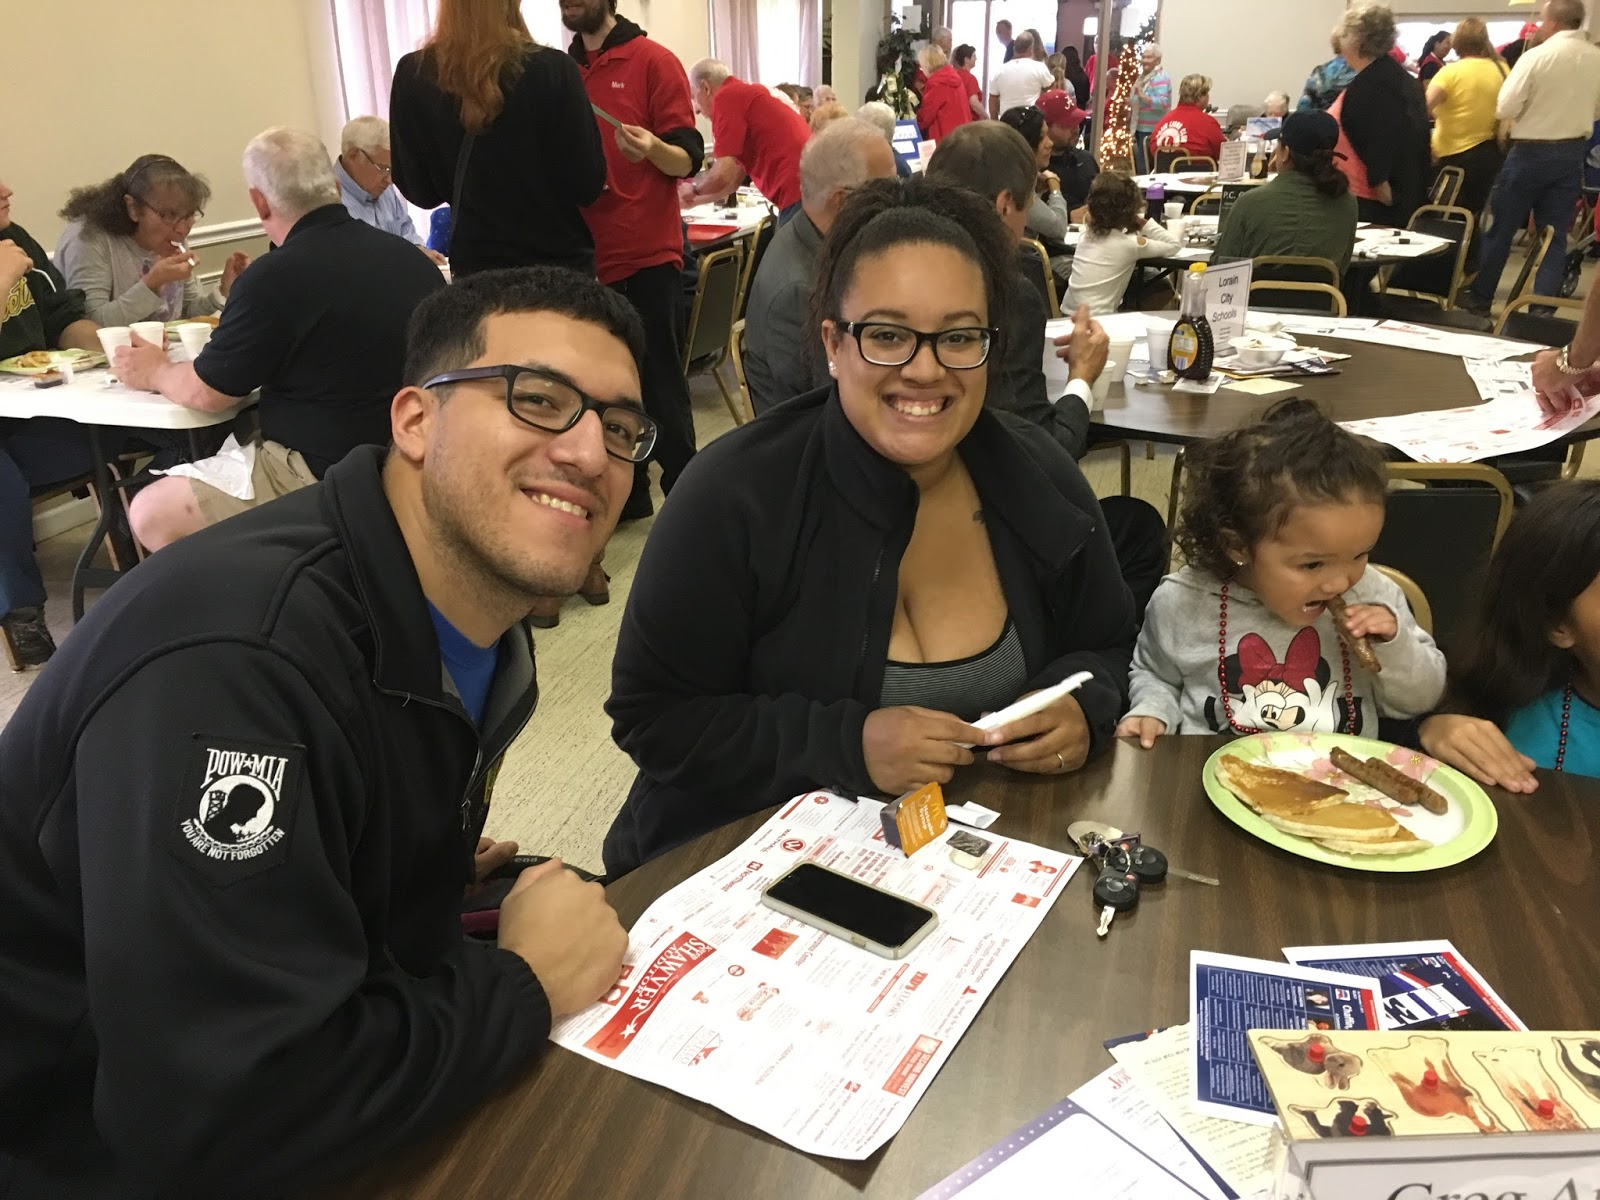 Alec And Veronique Nieto With Daughter Have Attended Many Of The Lions Club Breakfasts